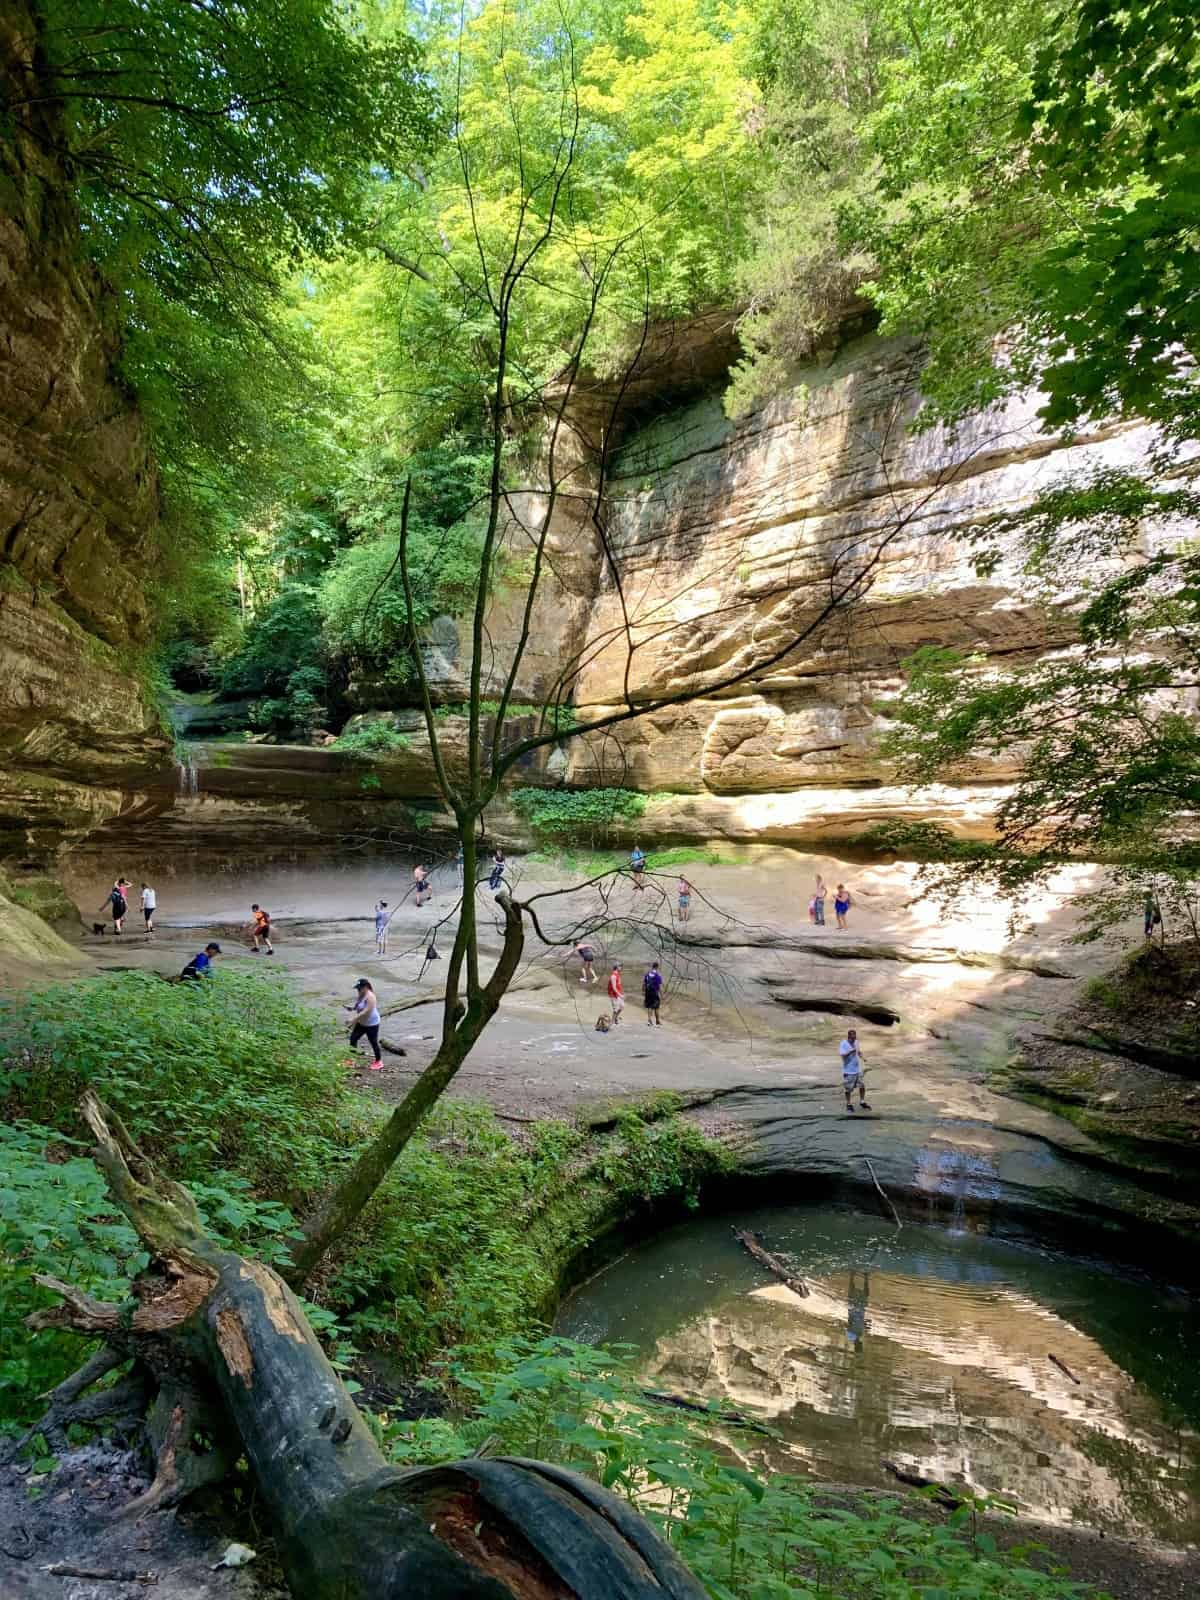 If you have time, take a day trip to Starved Rock State Park for some hiking - things to do in Chicago